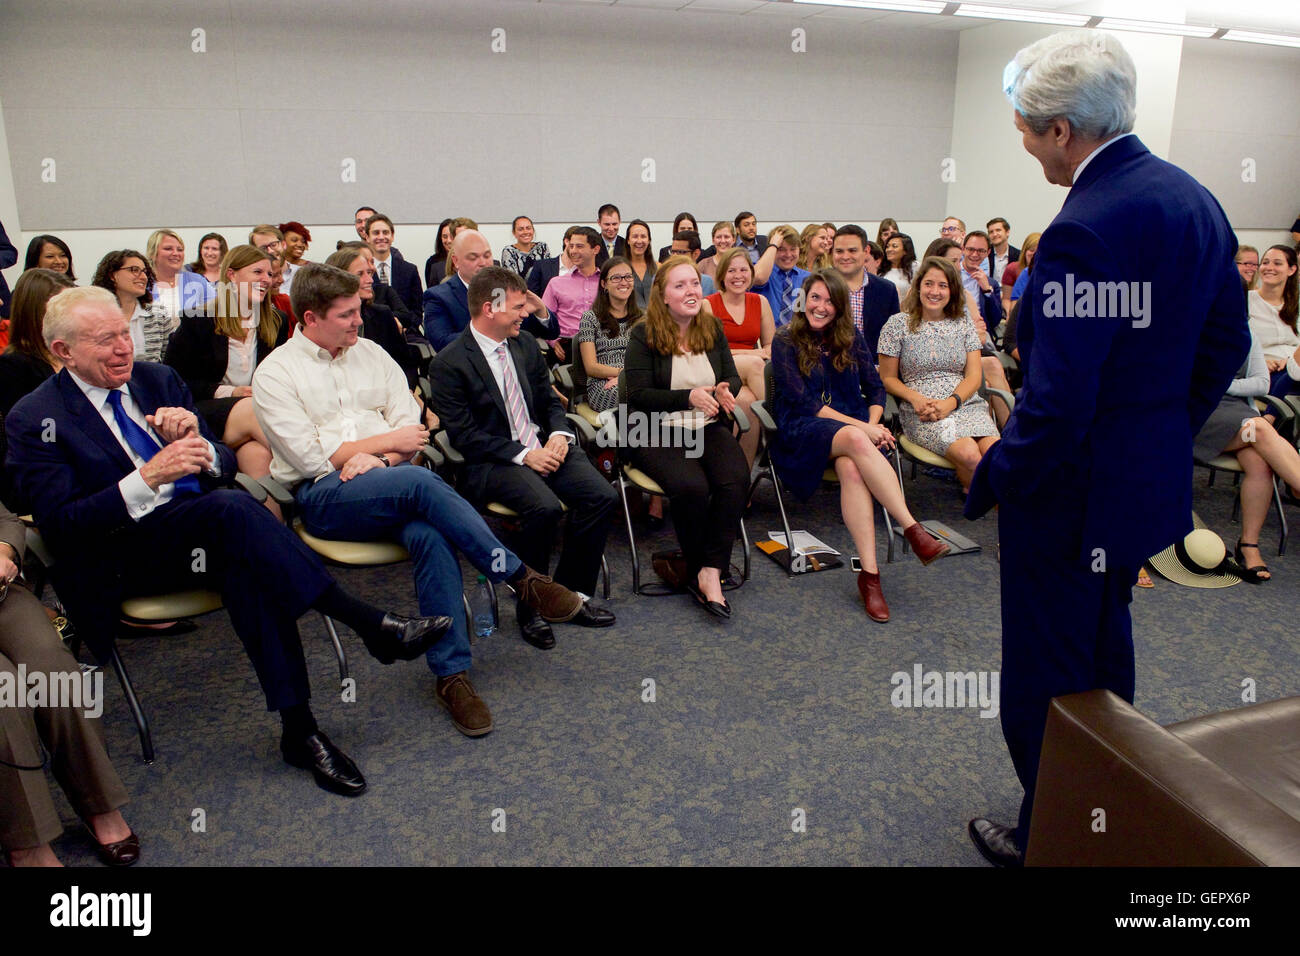 Secretary Kerry Speaks With Students at the LBJ School of Public Affairs at the University of Texas at Austin Stock Photo